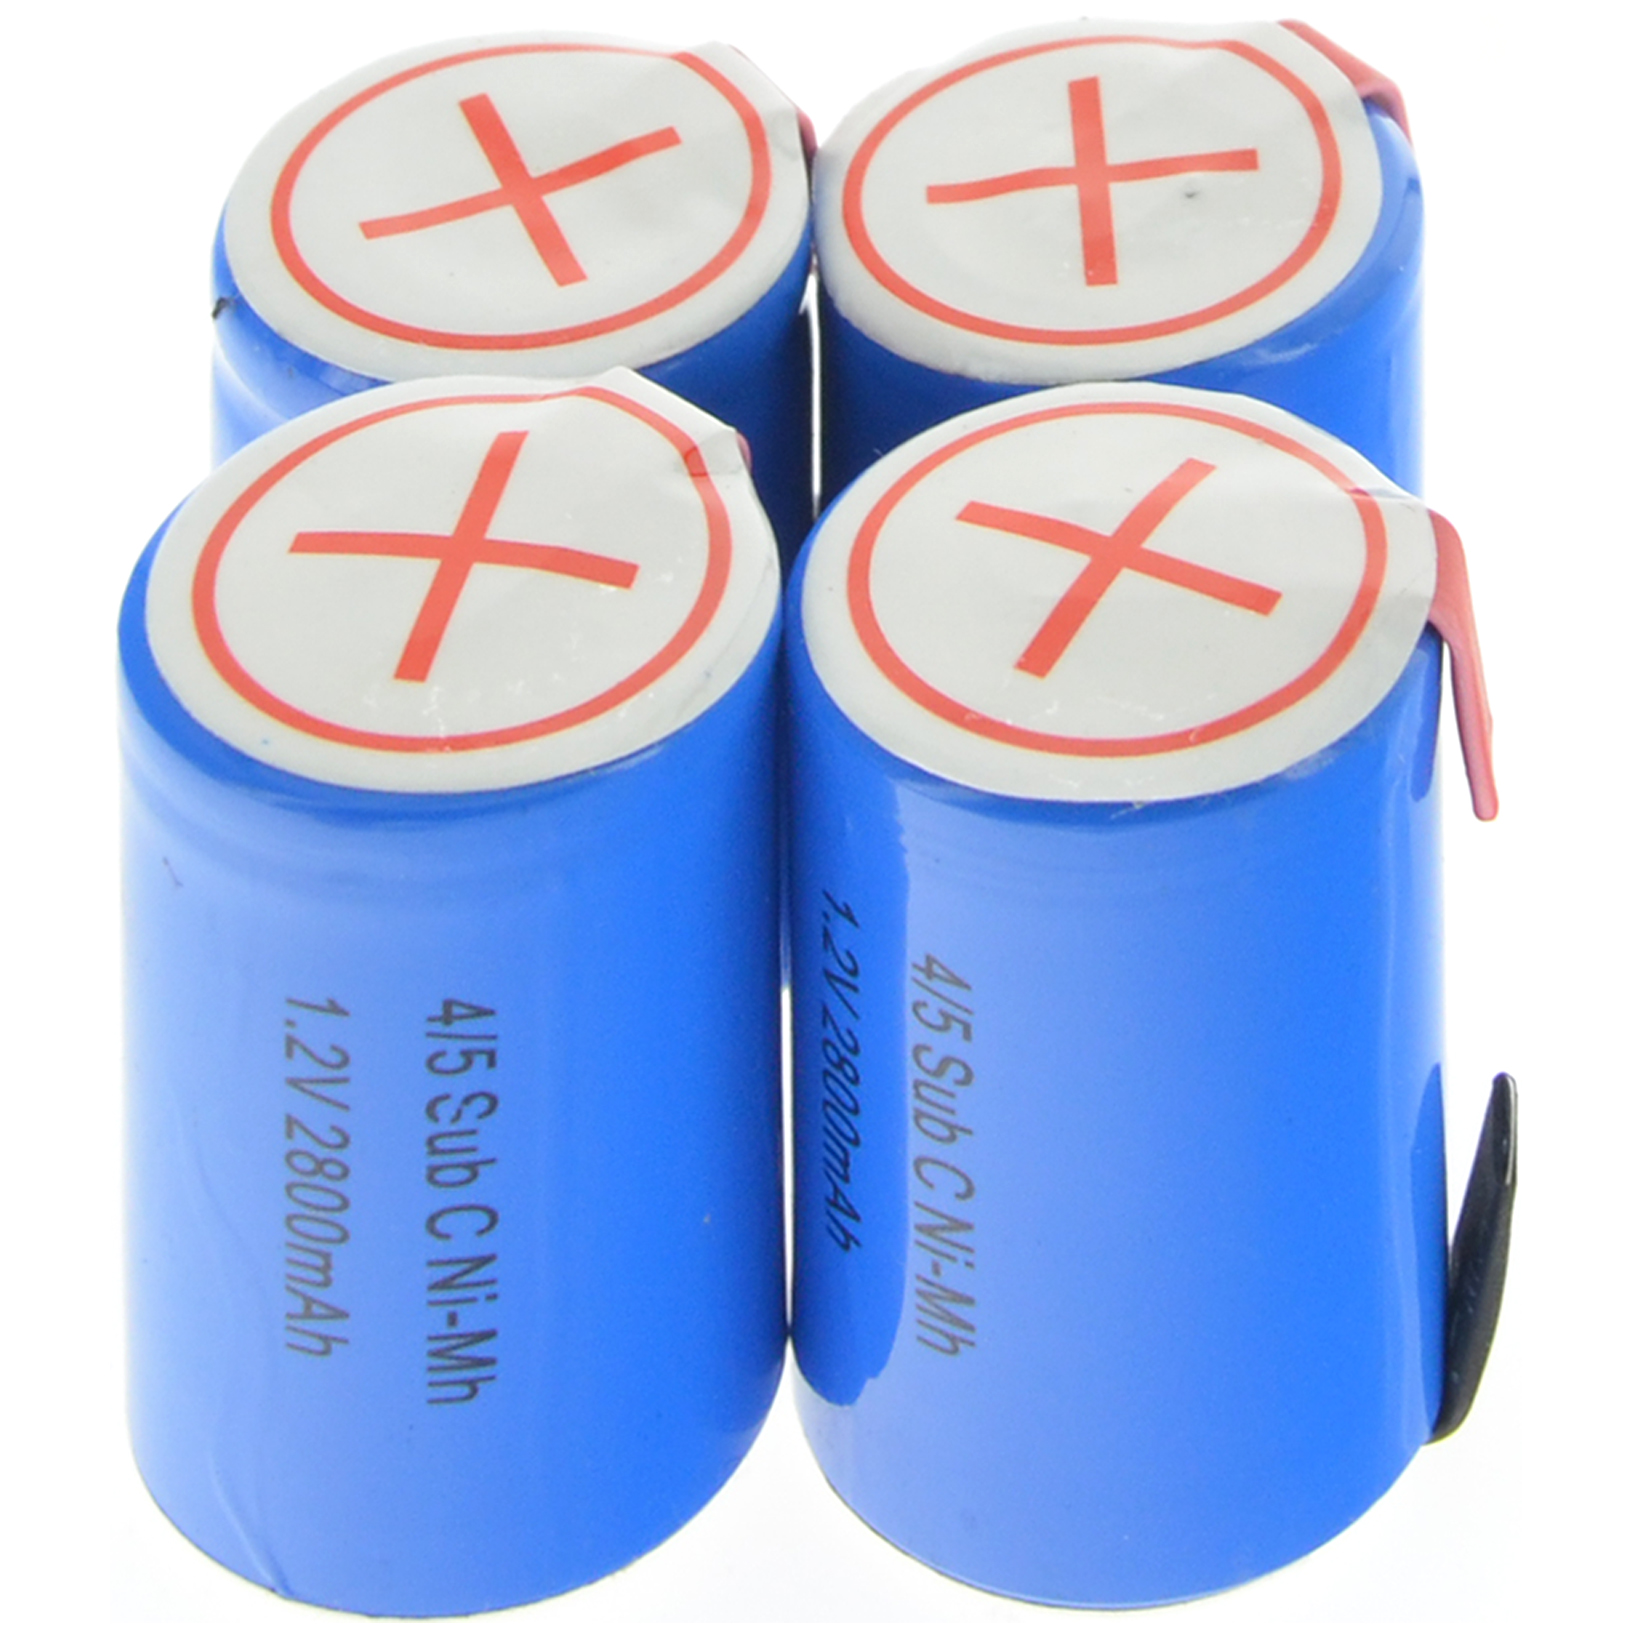 1/2/4/8/12pcs 4/5 SubC Sub C 2800mAh 12pcs 1.2V Ni-Mh Rechargeable Battery Blue Cell with Tab подвеска от моли glorus кедр 2шт